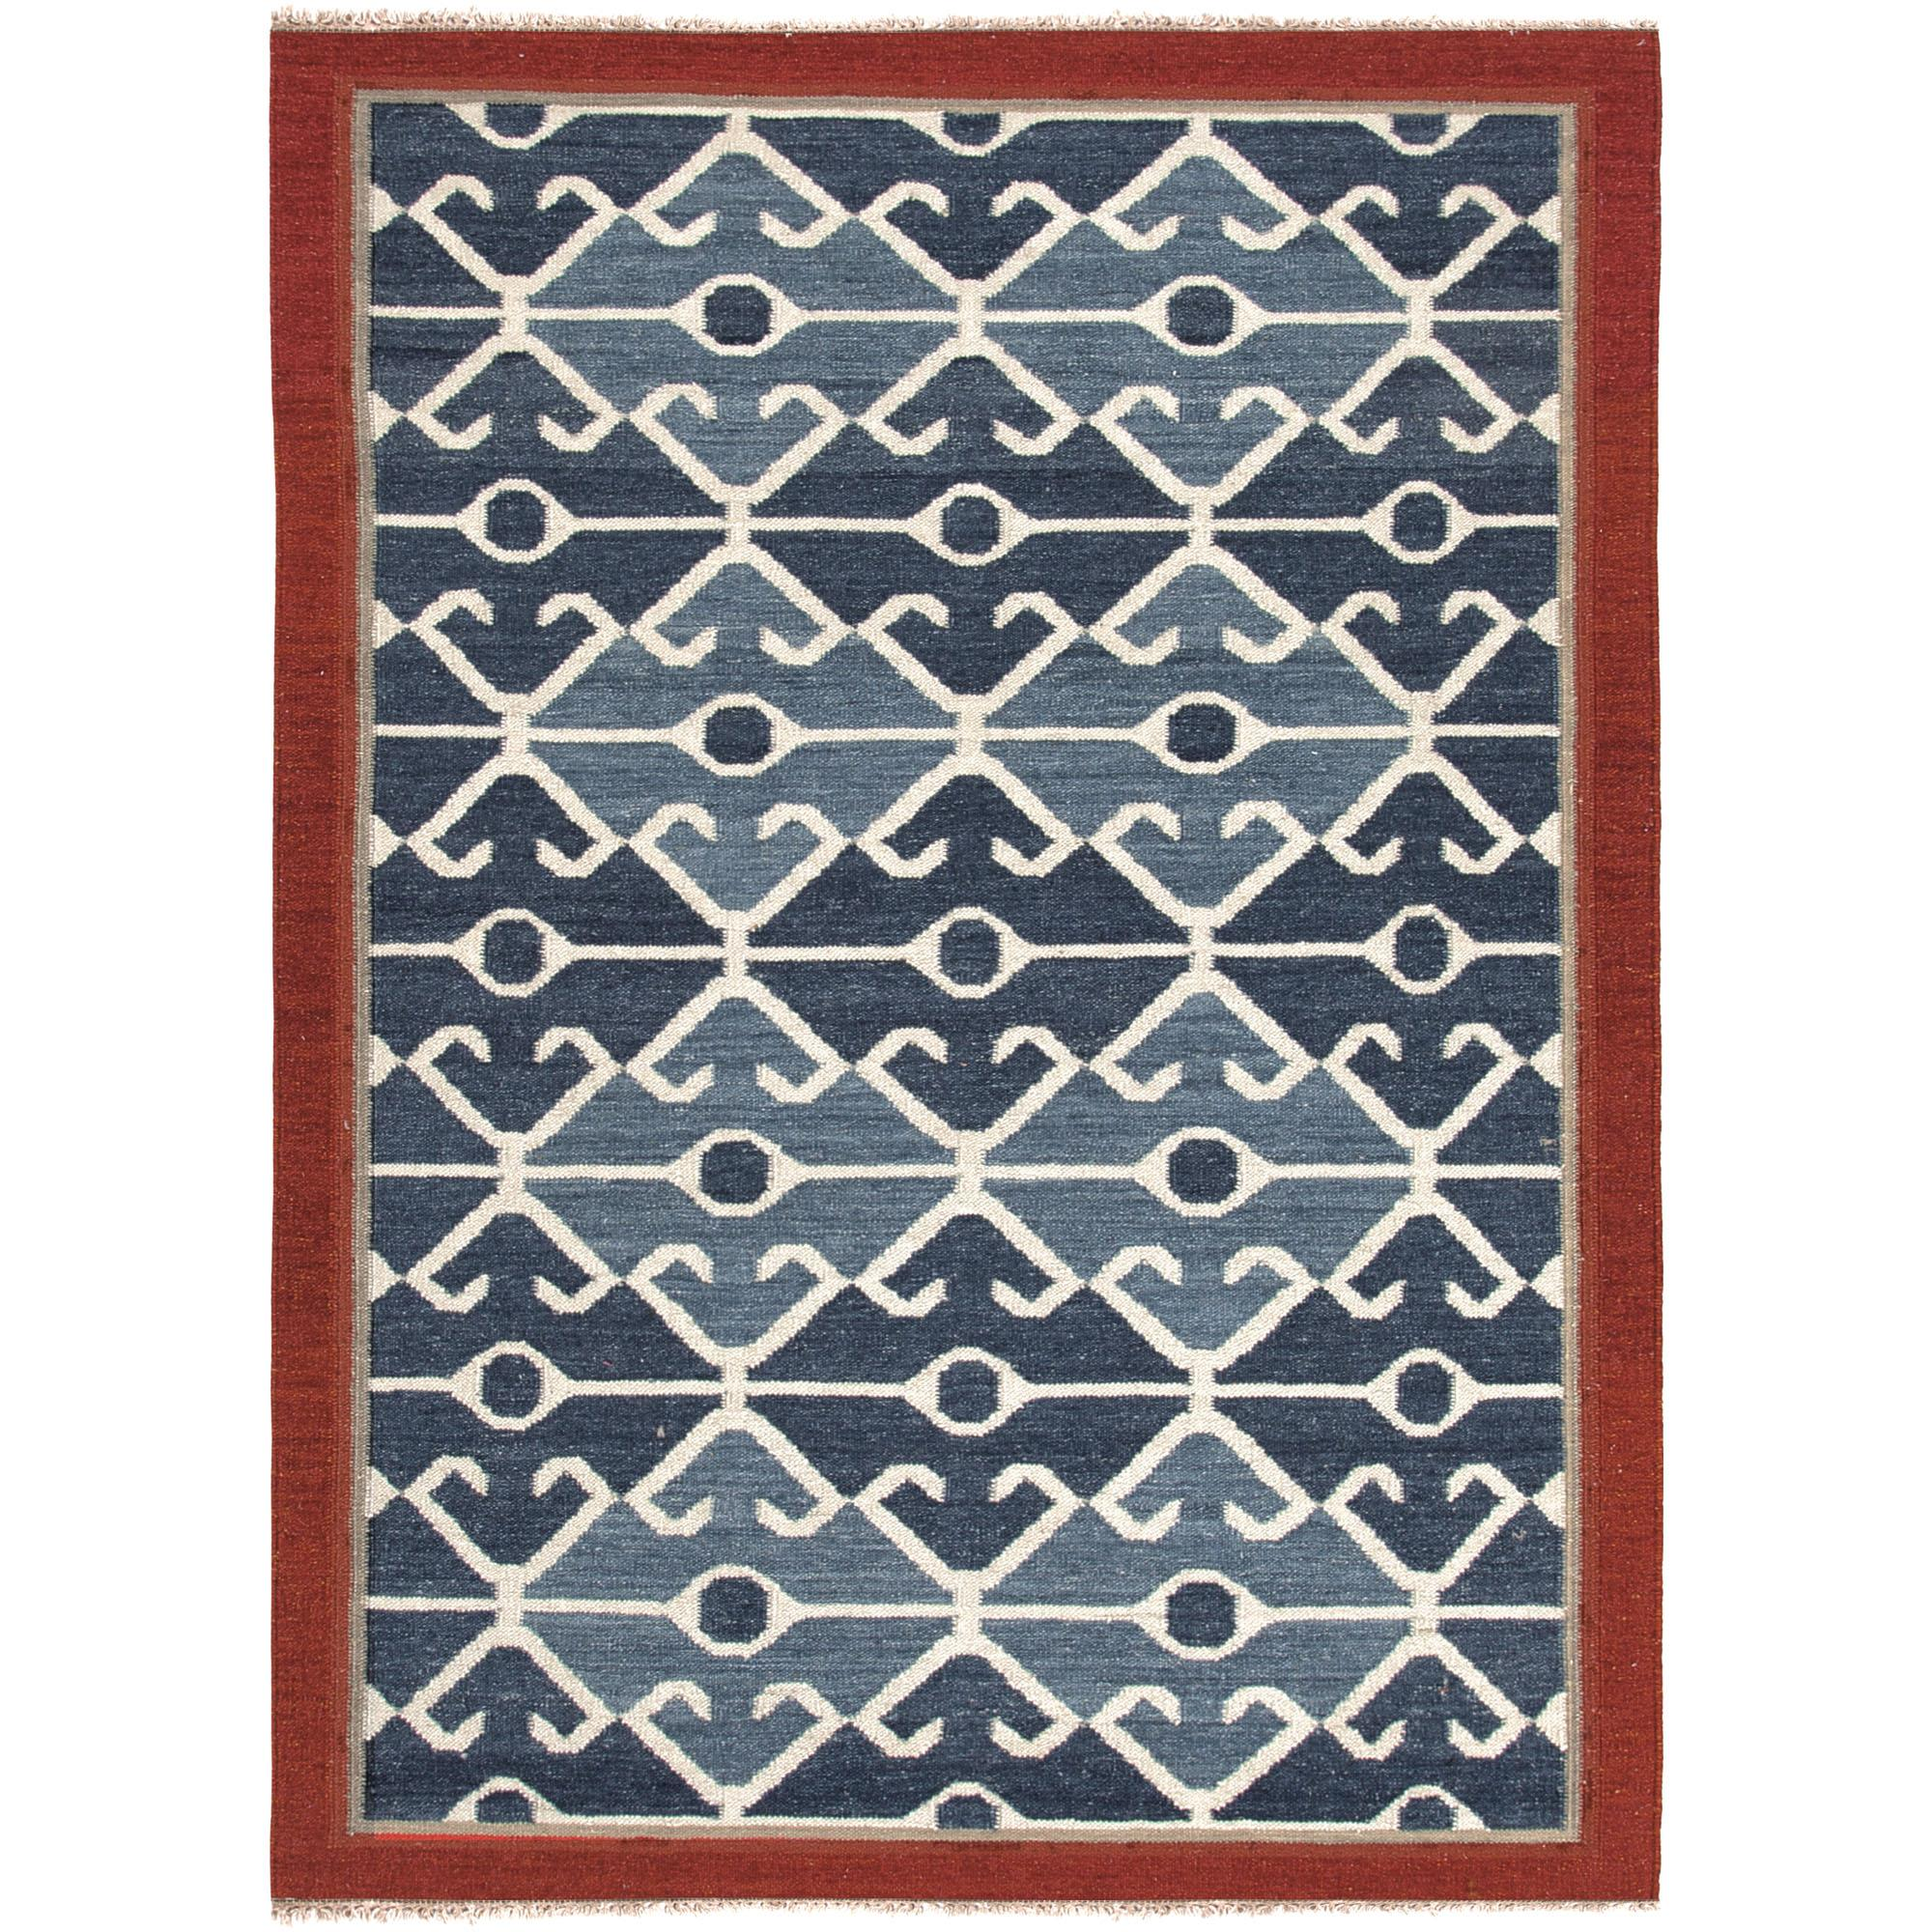 Anatolia 8 x 10 Rug by JAIPUR Living at Sprintz Furniture